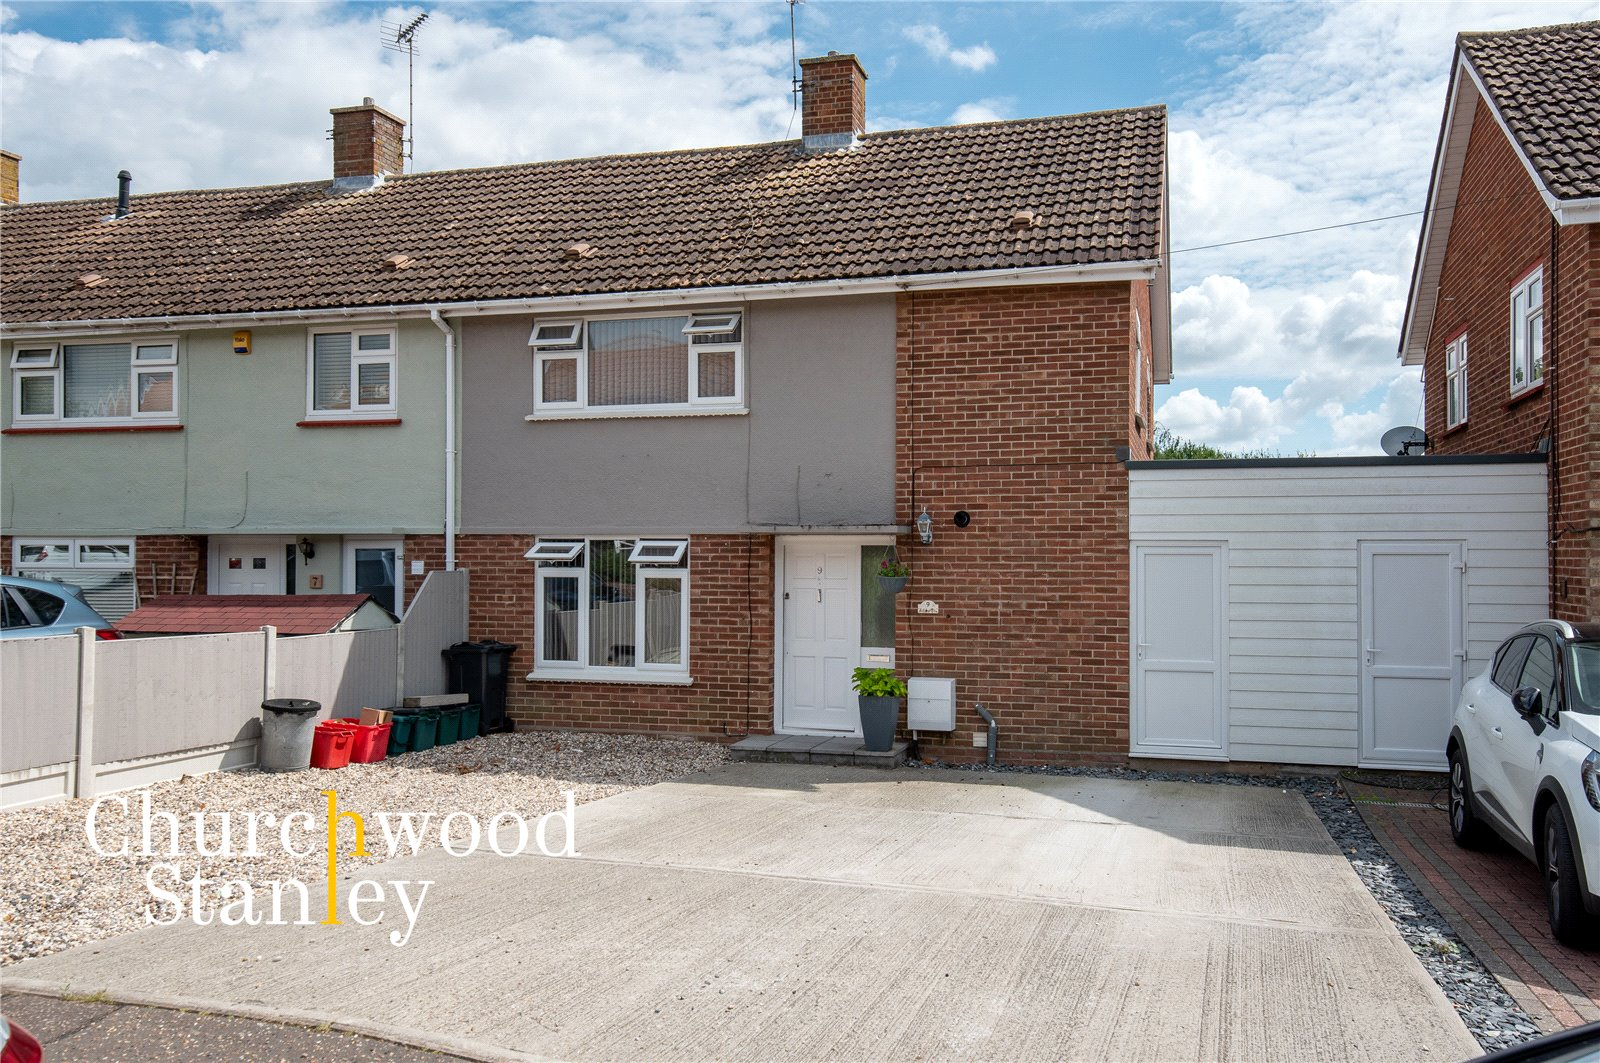 3 bed semi-detached house for sale in Deanes Close, Dovercourt, Harwich, CO12